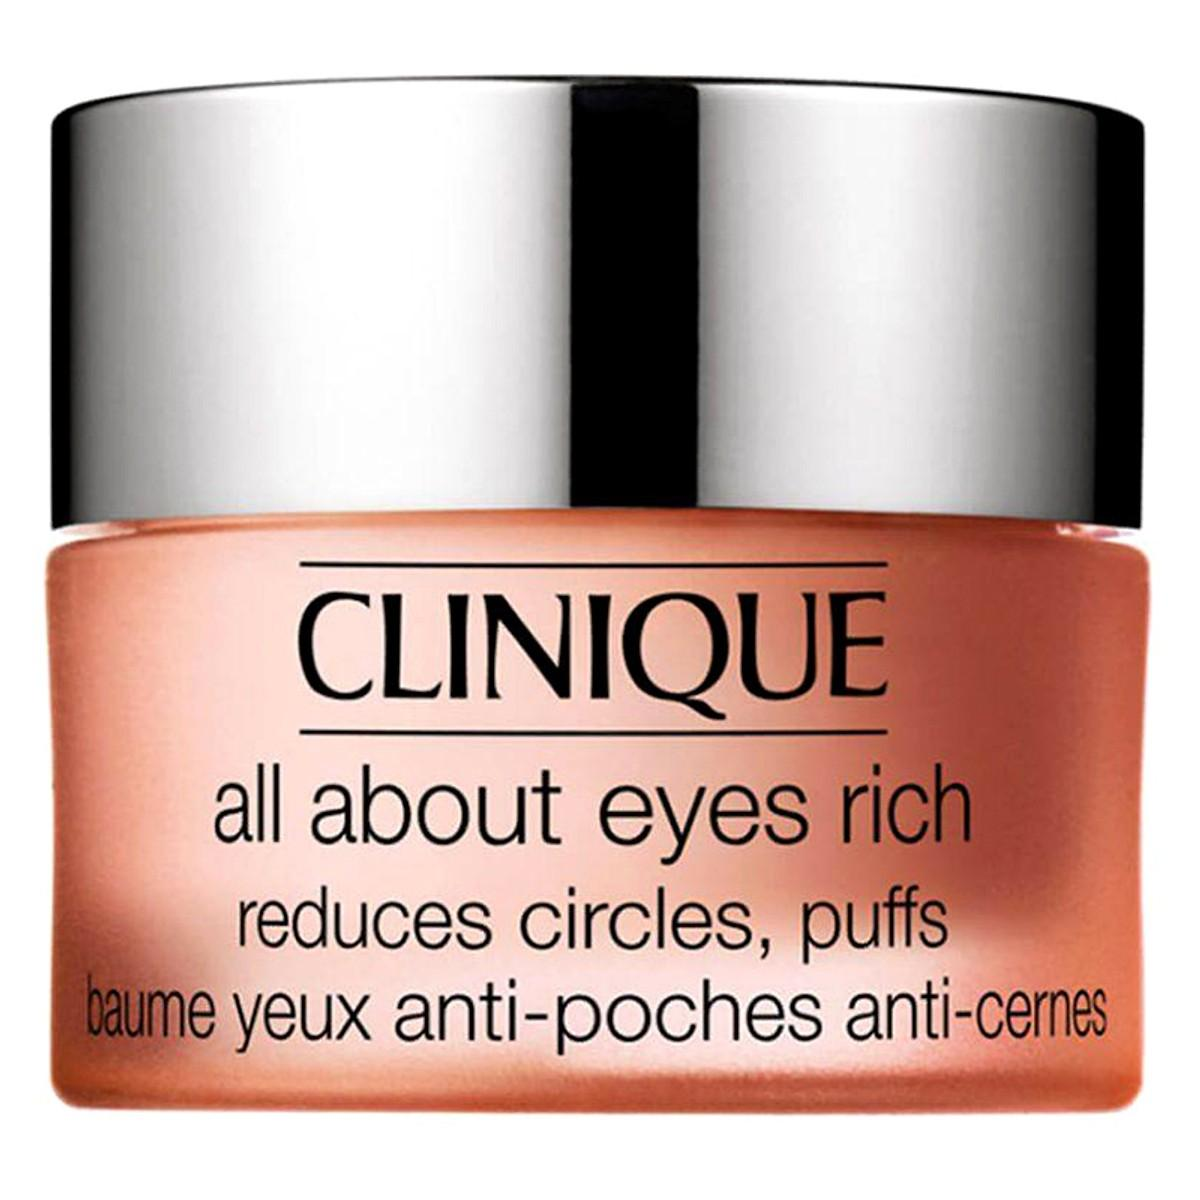 Clinique - Kem Dưỡng Da Vùng Mắt All About Eyes Rich - 6KAK010000 (15ml)